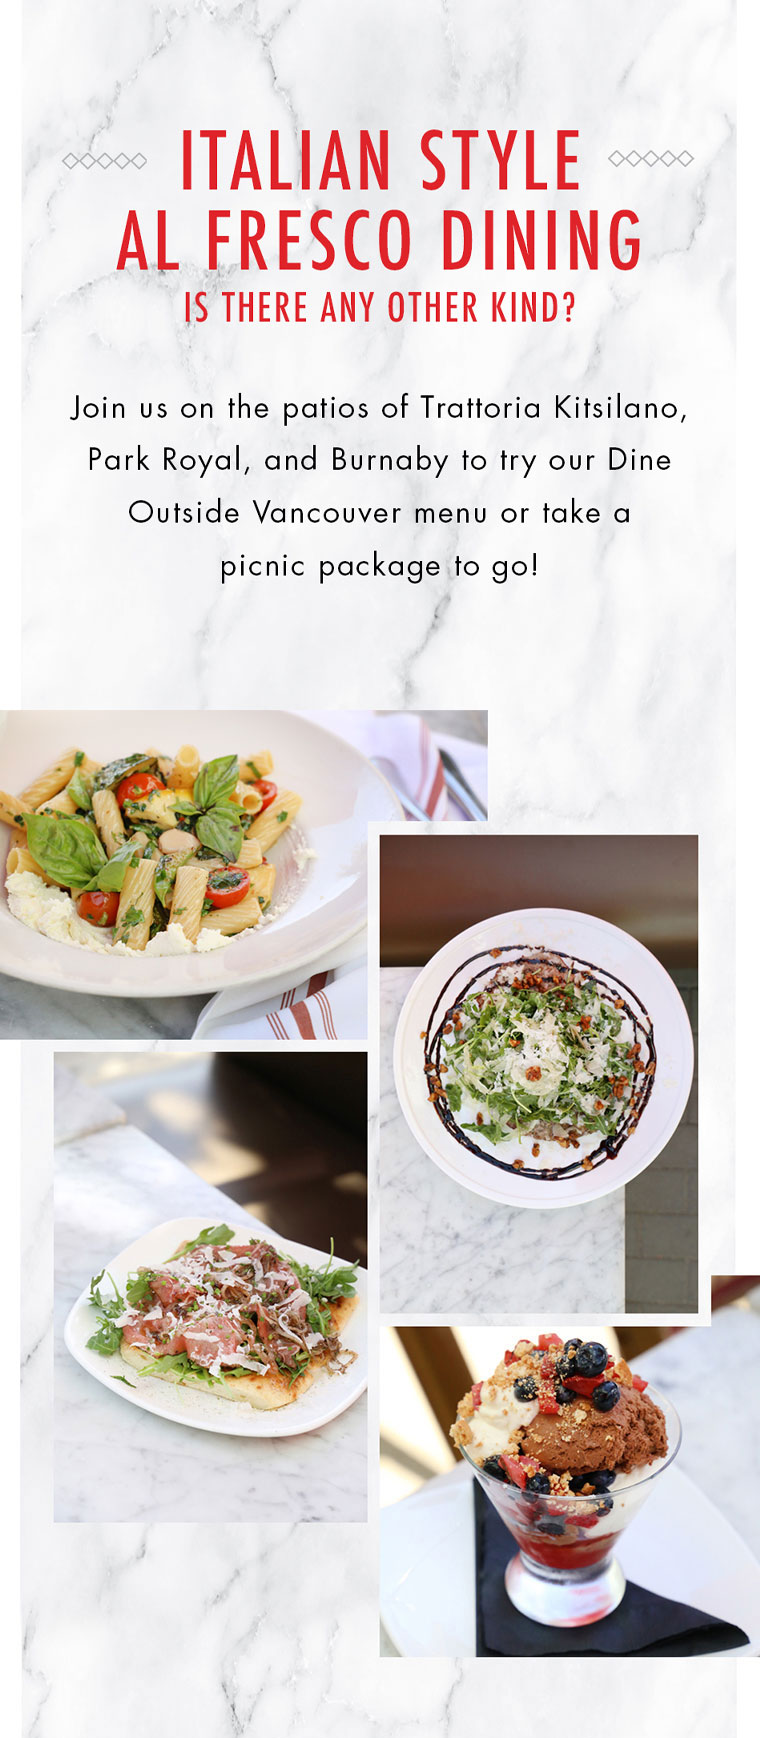 Join us on the sunny patios of Trattoria Kitsilano, Park Royal, and Burnaby to try our Dine Outside Vancouver menu or take a  picnic package to go!